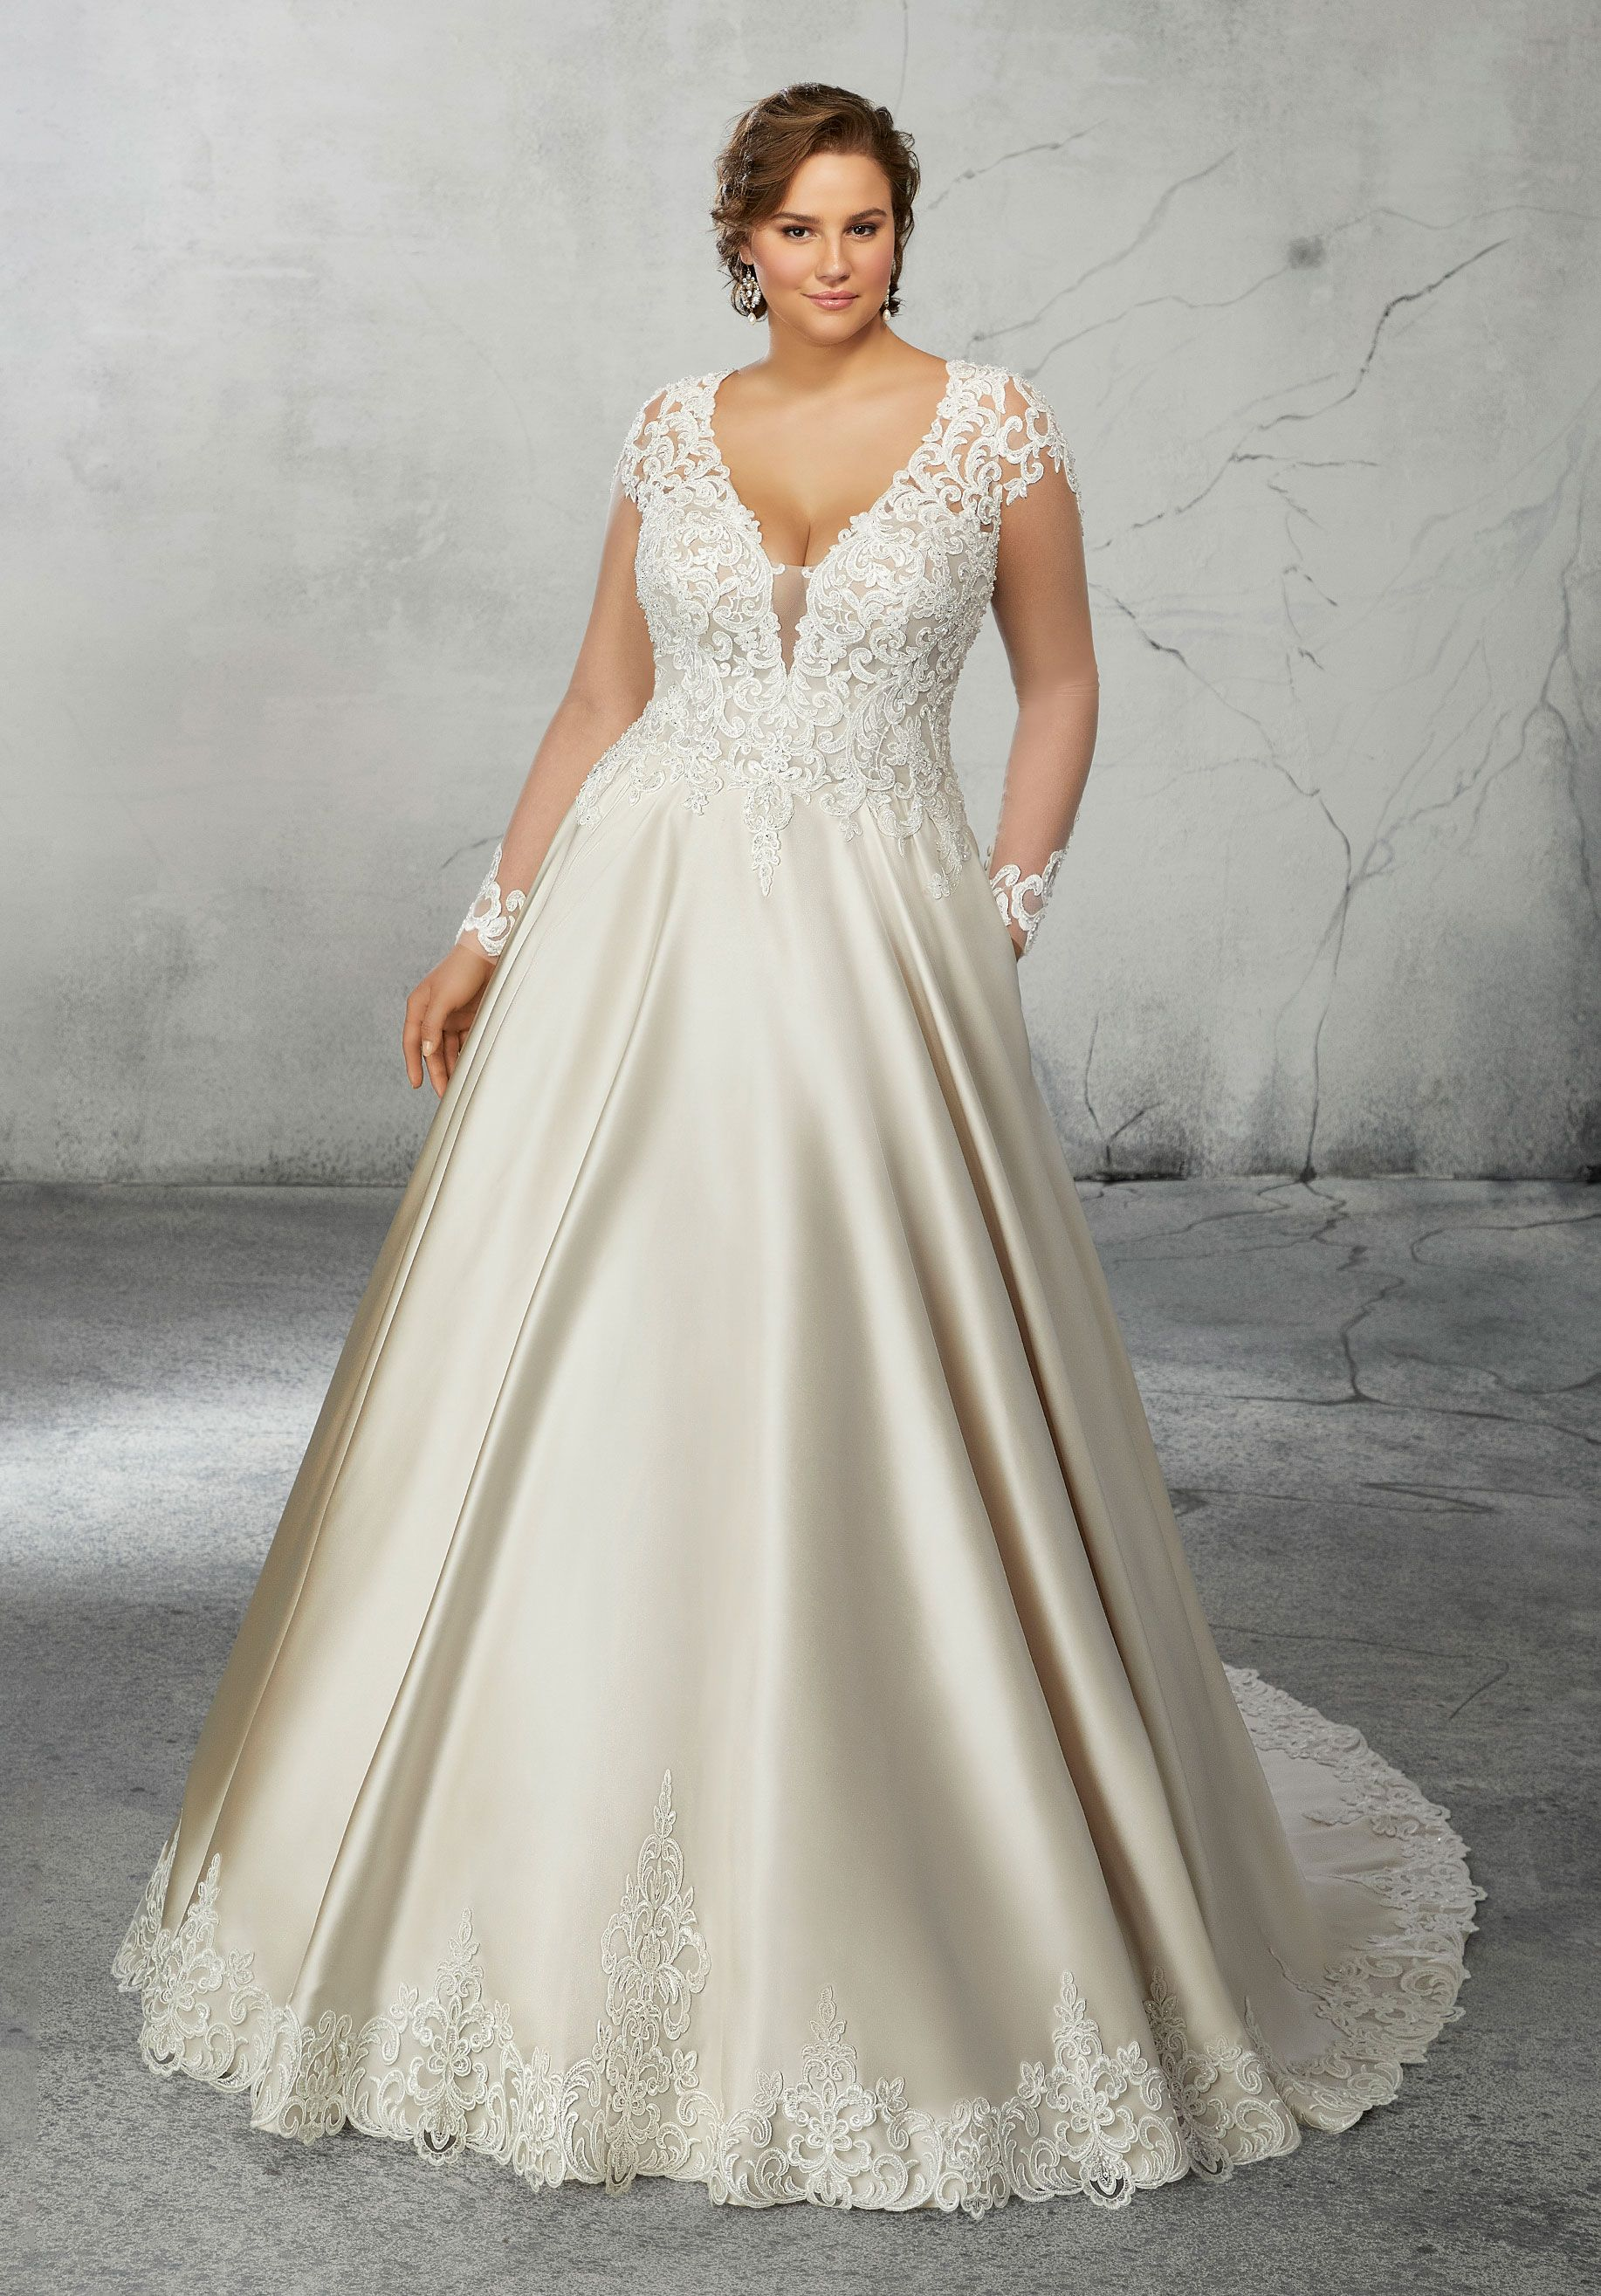 This Plus Size Satin Ballgown Features Lace Long Sleeves And A